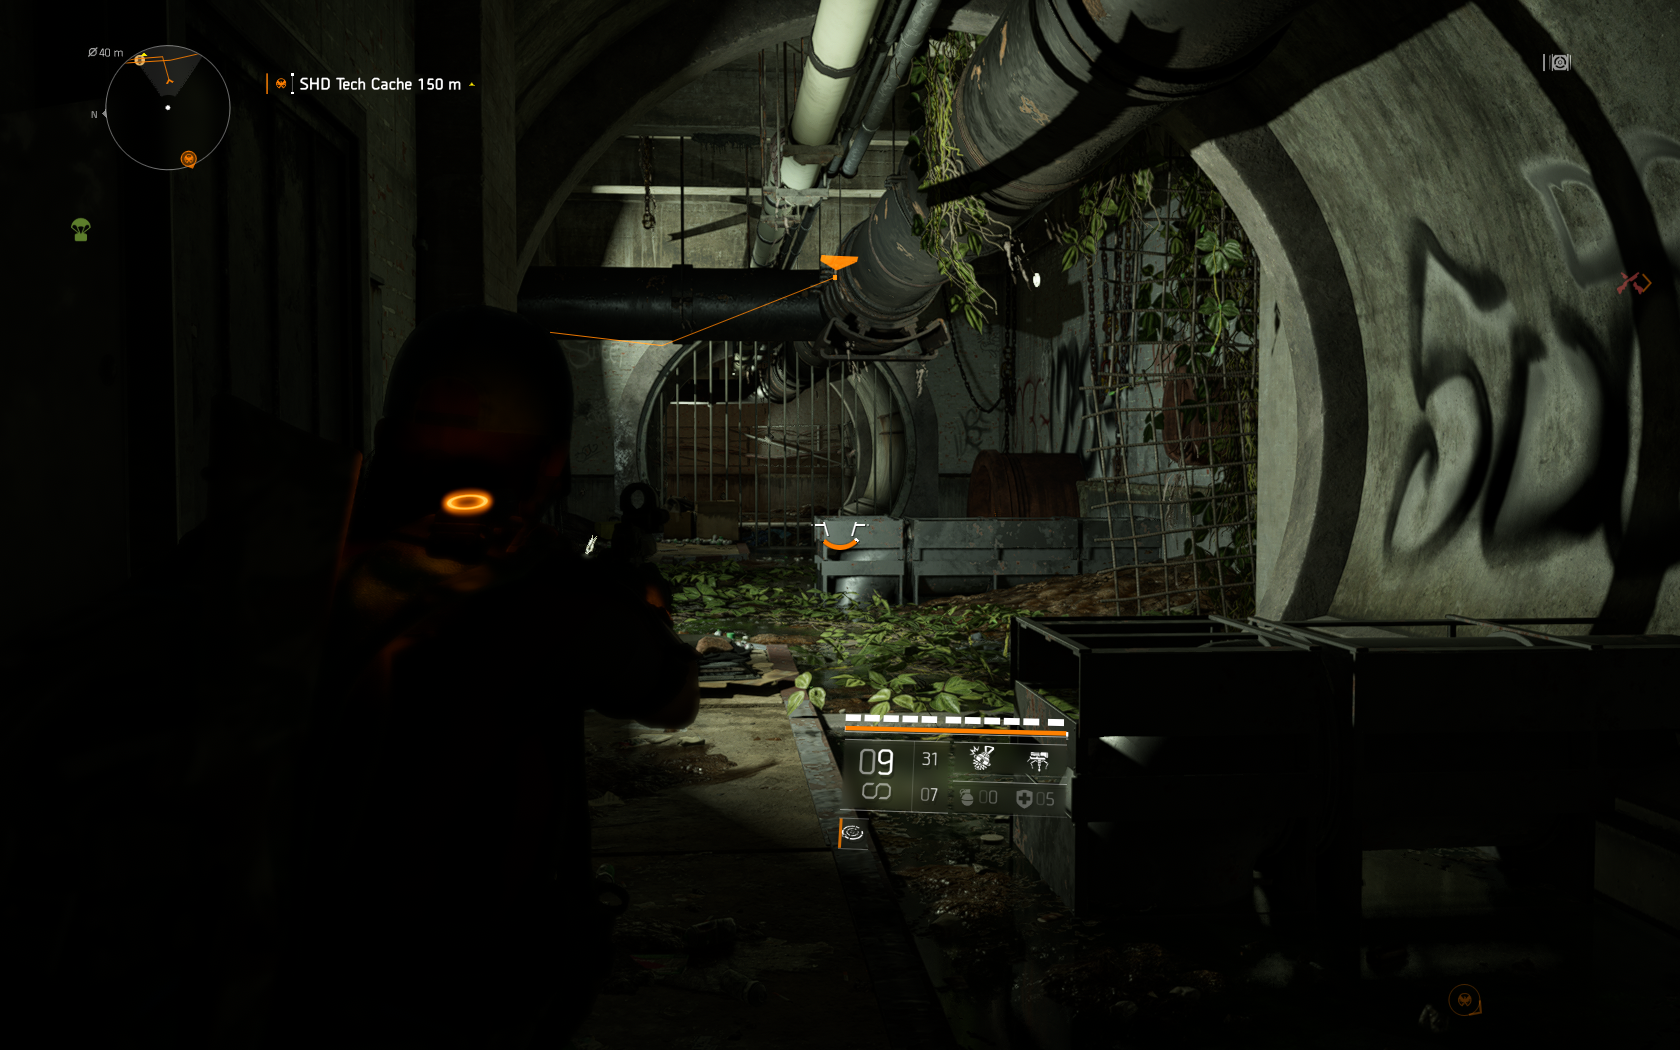 Tom Clancy's The Division 2 Screenshot 2019.03.21 - 00.00.11.21.png